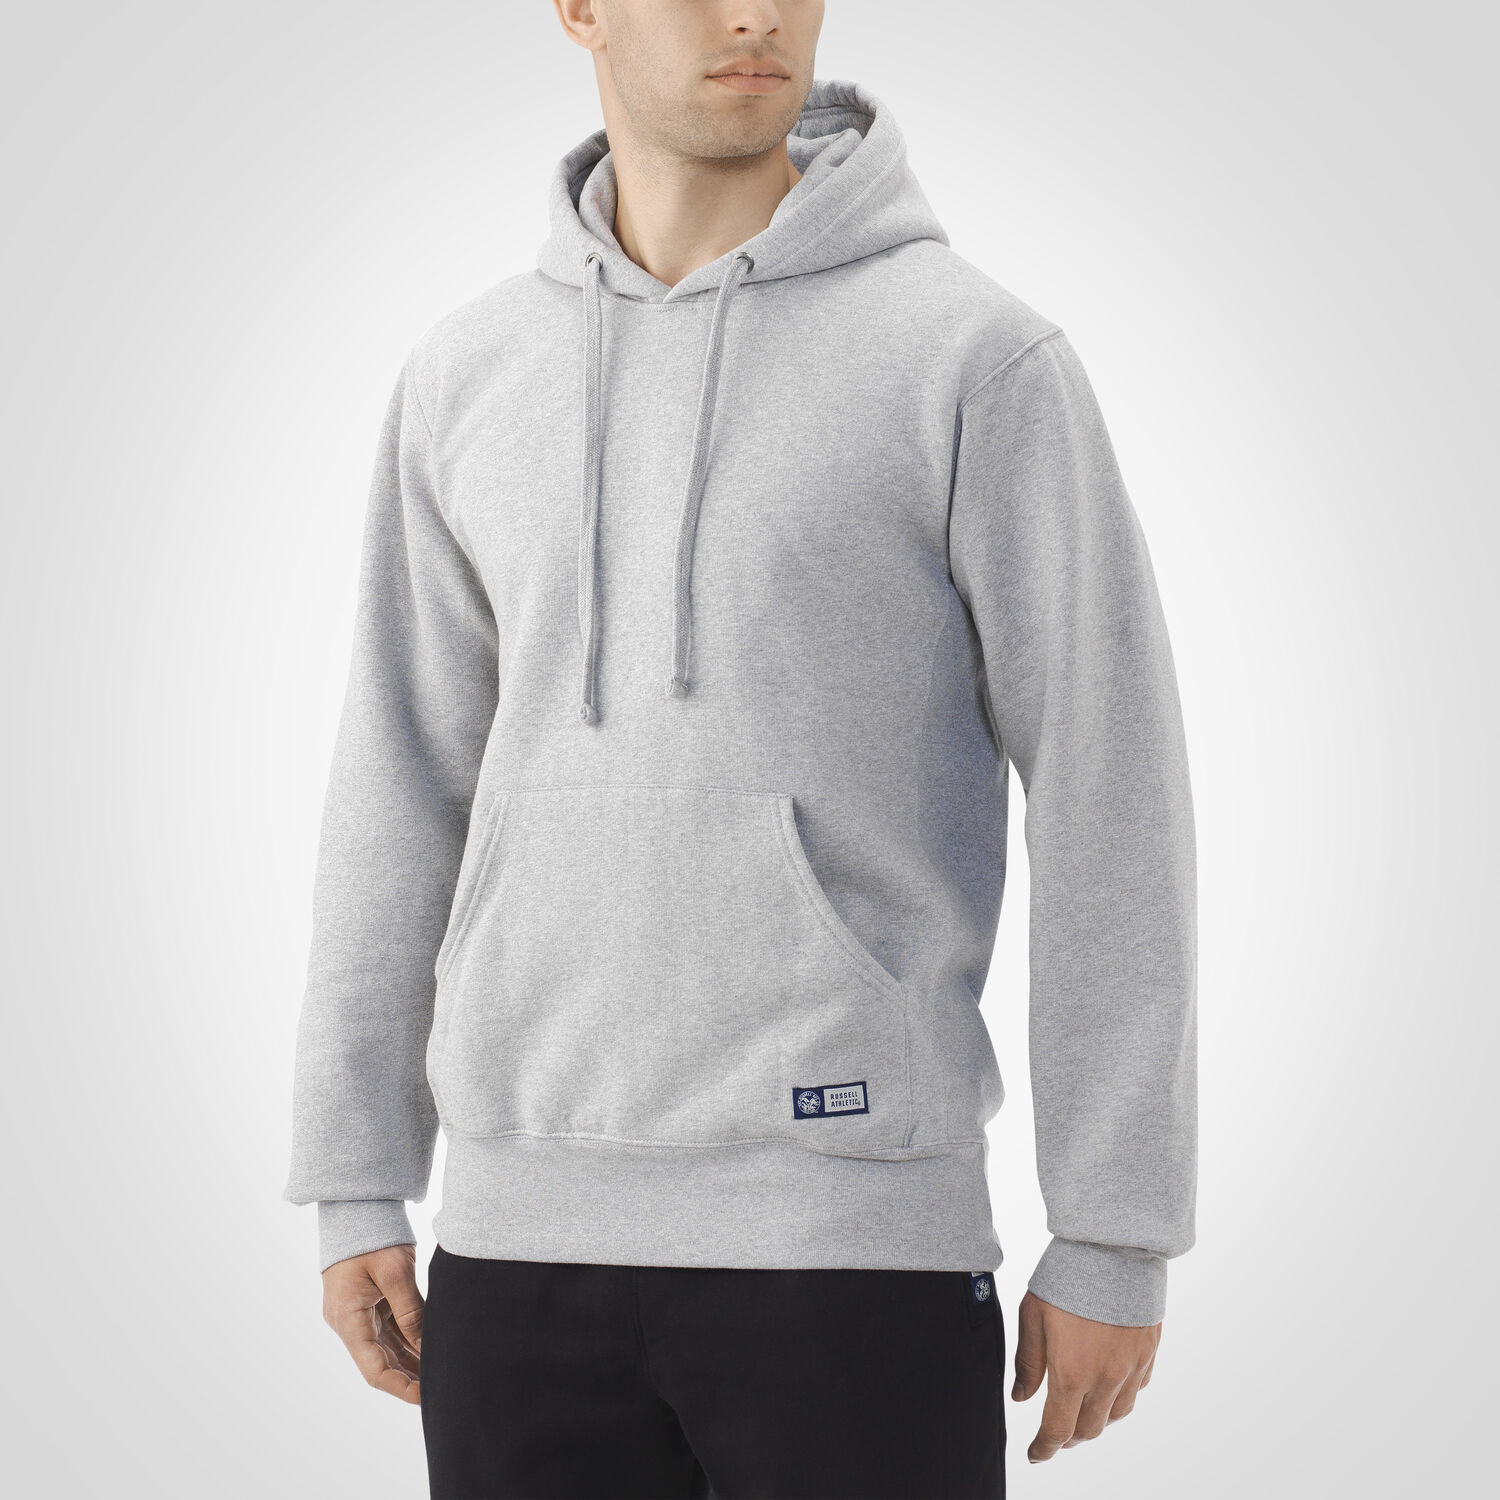 Mens Pro10 Fleece Hoodie Russell Us Athletic Sweater 10 Oxford